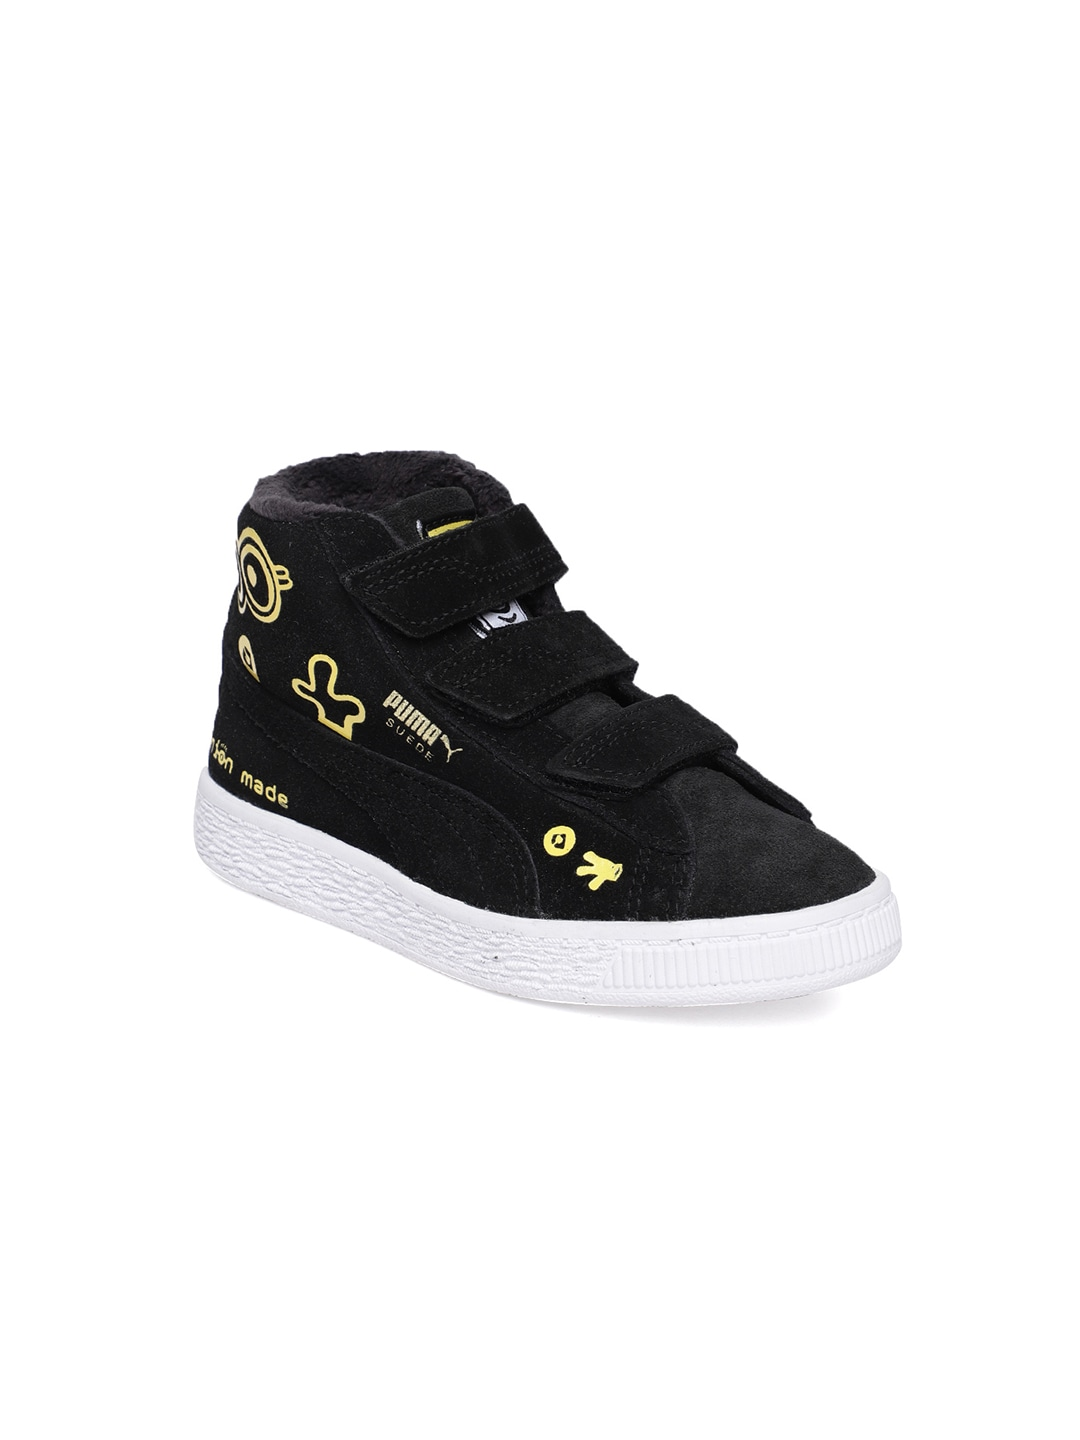 da923e0a1d89f0 Boys Suede Shoes - Buy Boys Suede Shoes online in India